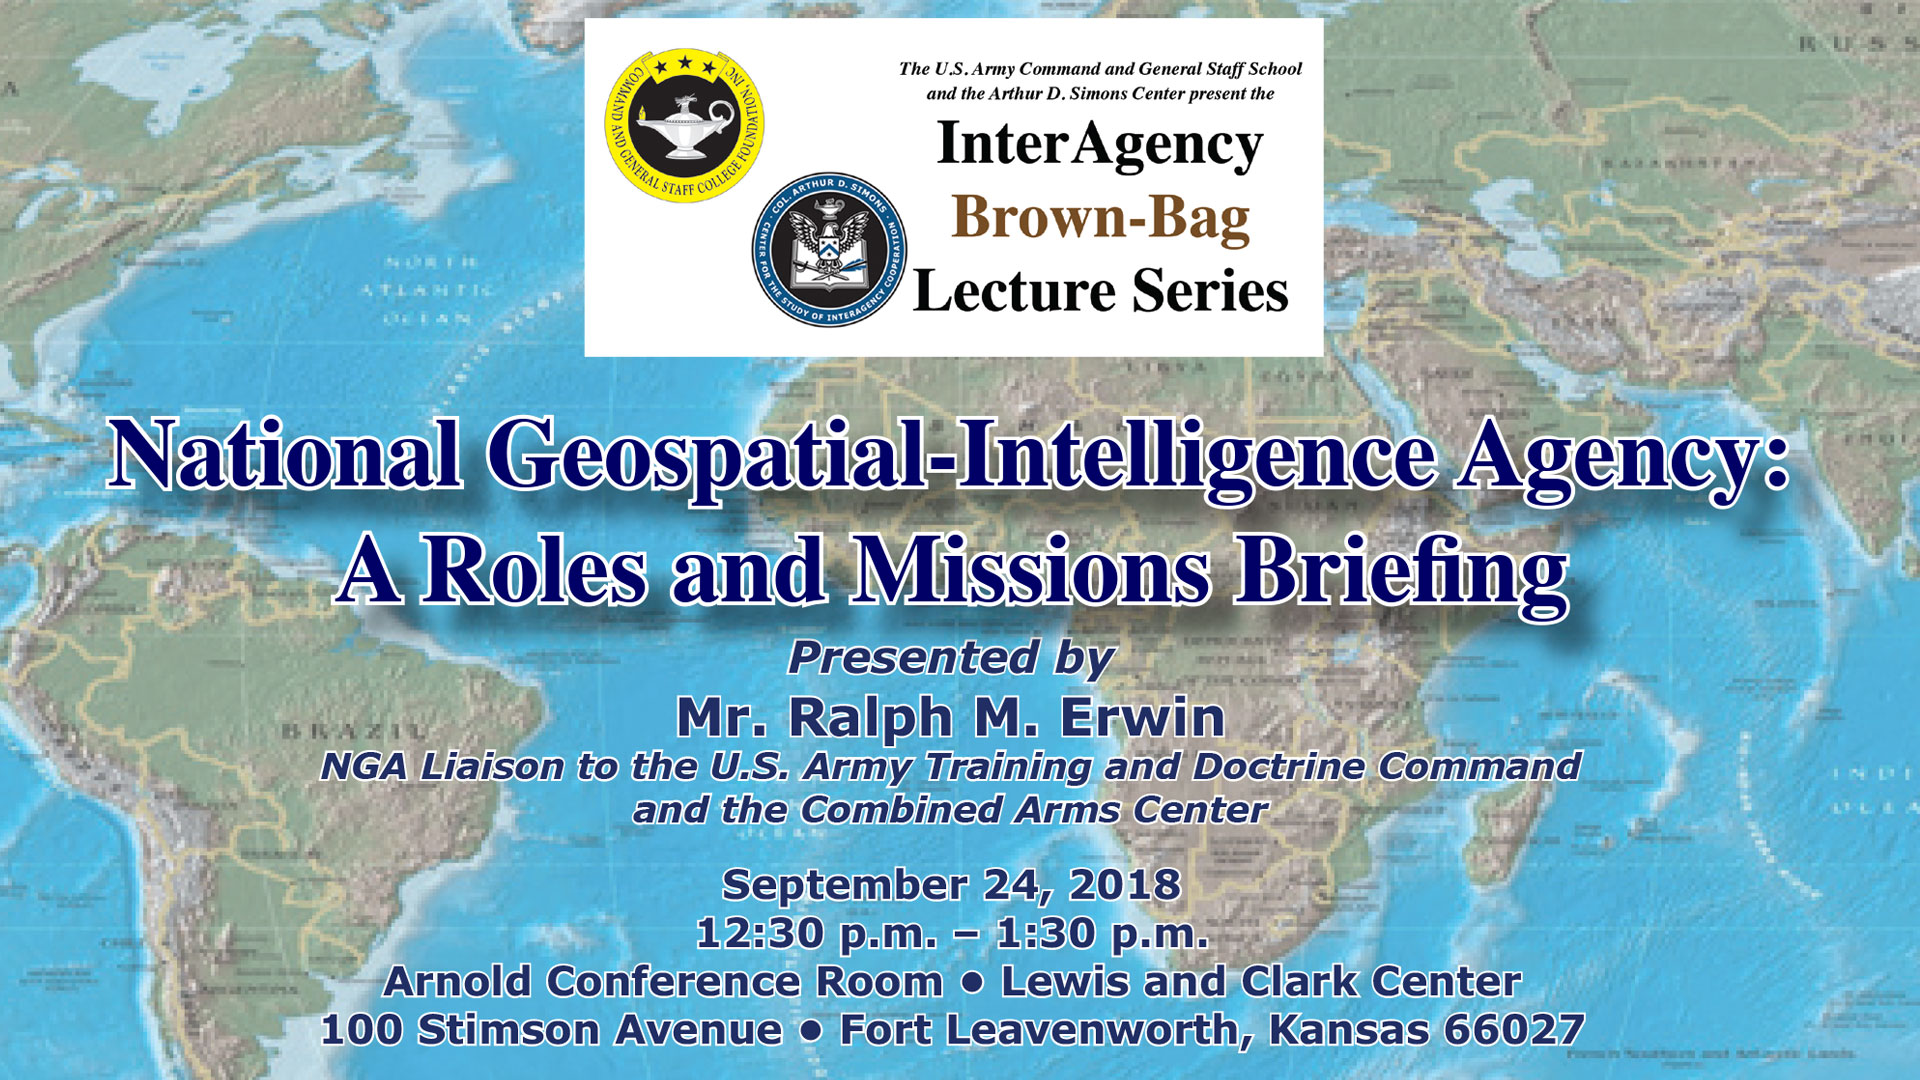 InterAgency Brown-Bag Lecture featuring the NGA set for Sept